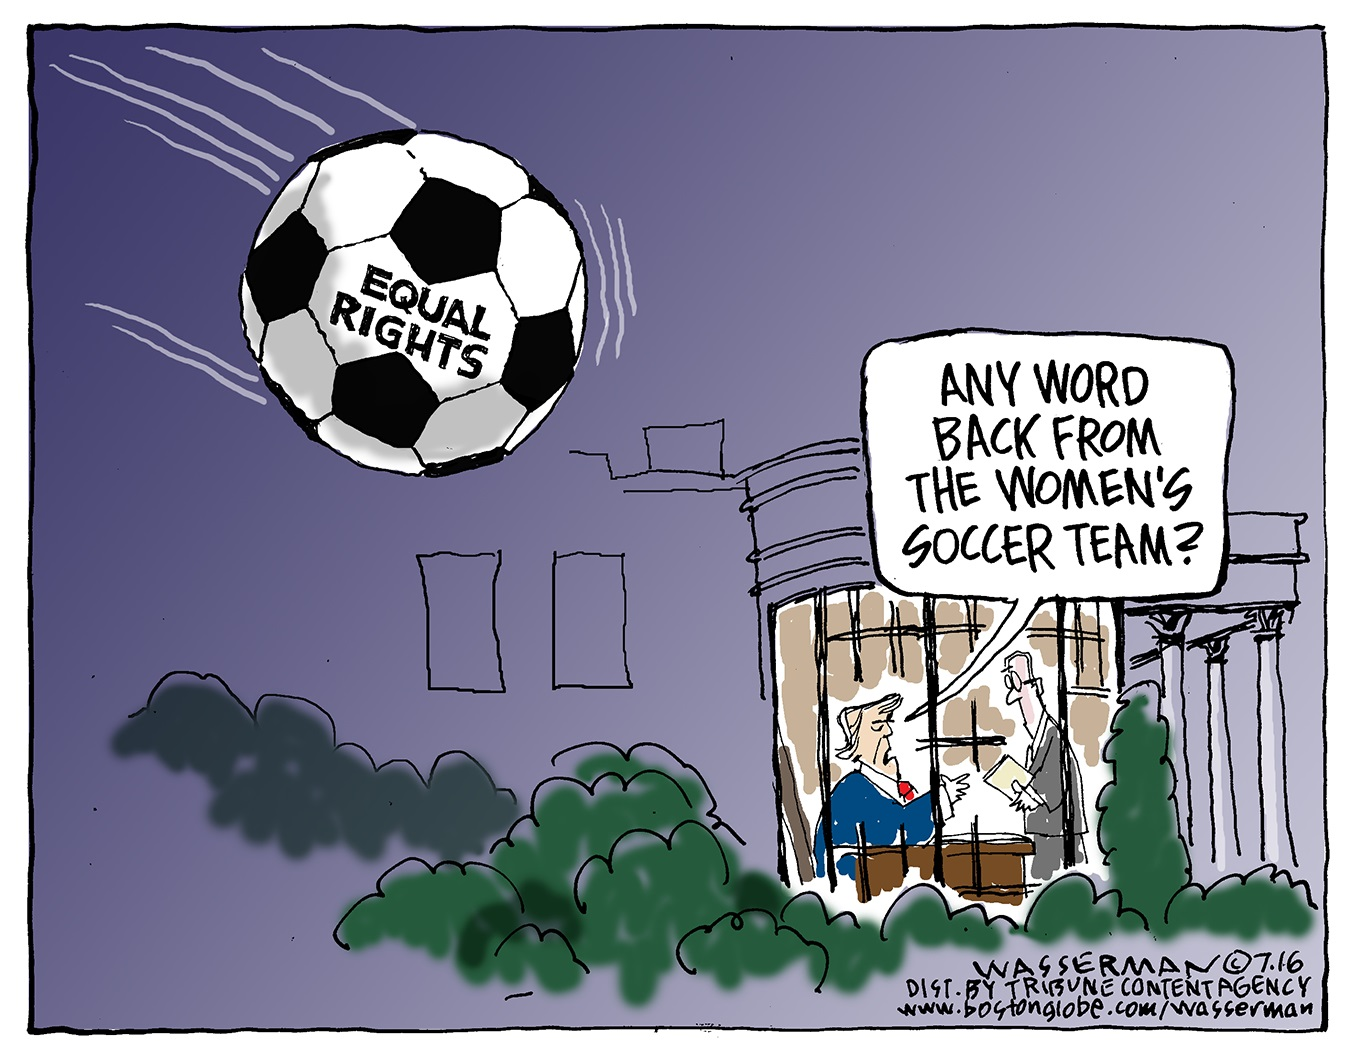 Editorial cartoons for July 14, 2019: Women's soccer, Jeffrey Epstein, divided Democrats